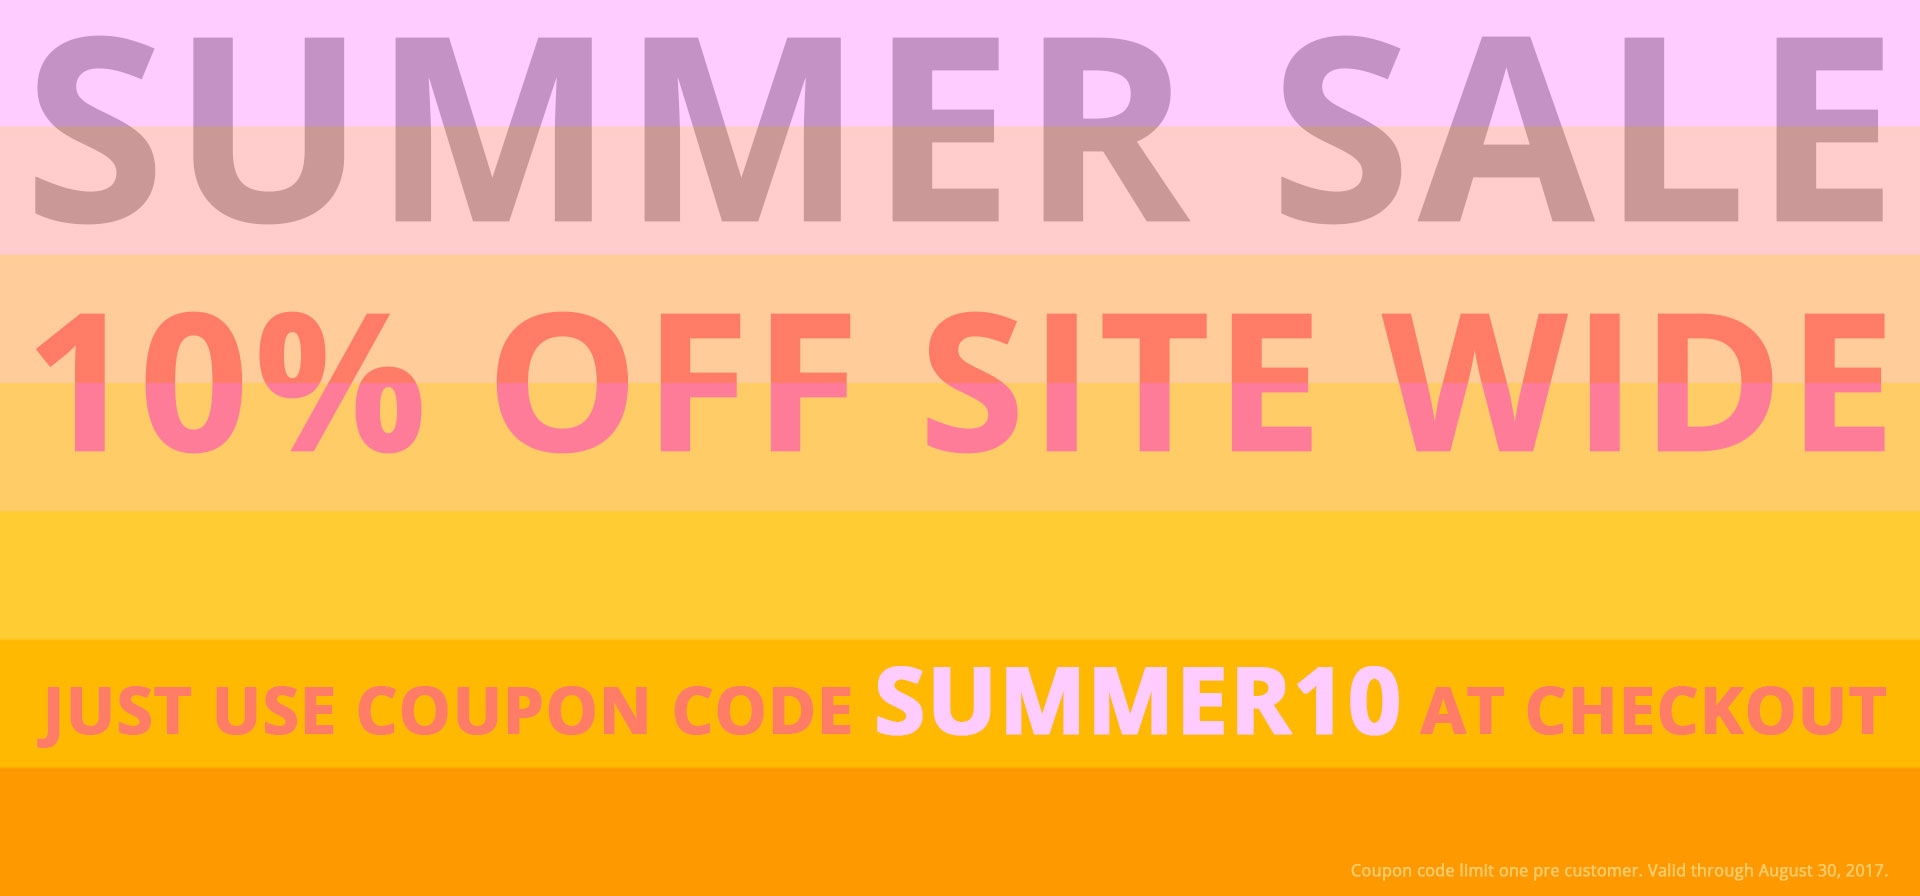 Summer Sale - 10% off Site Wide - Expires August 31, 2017